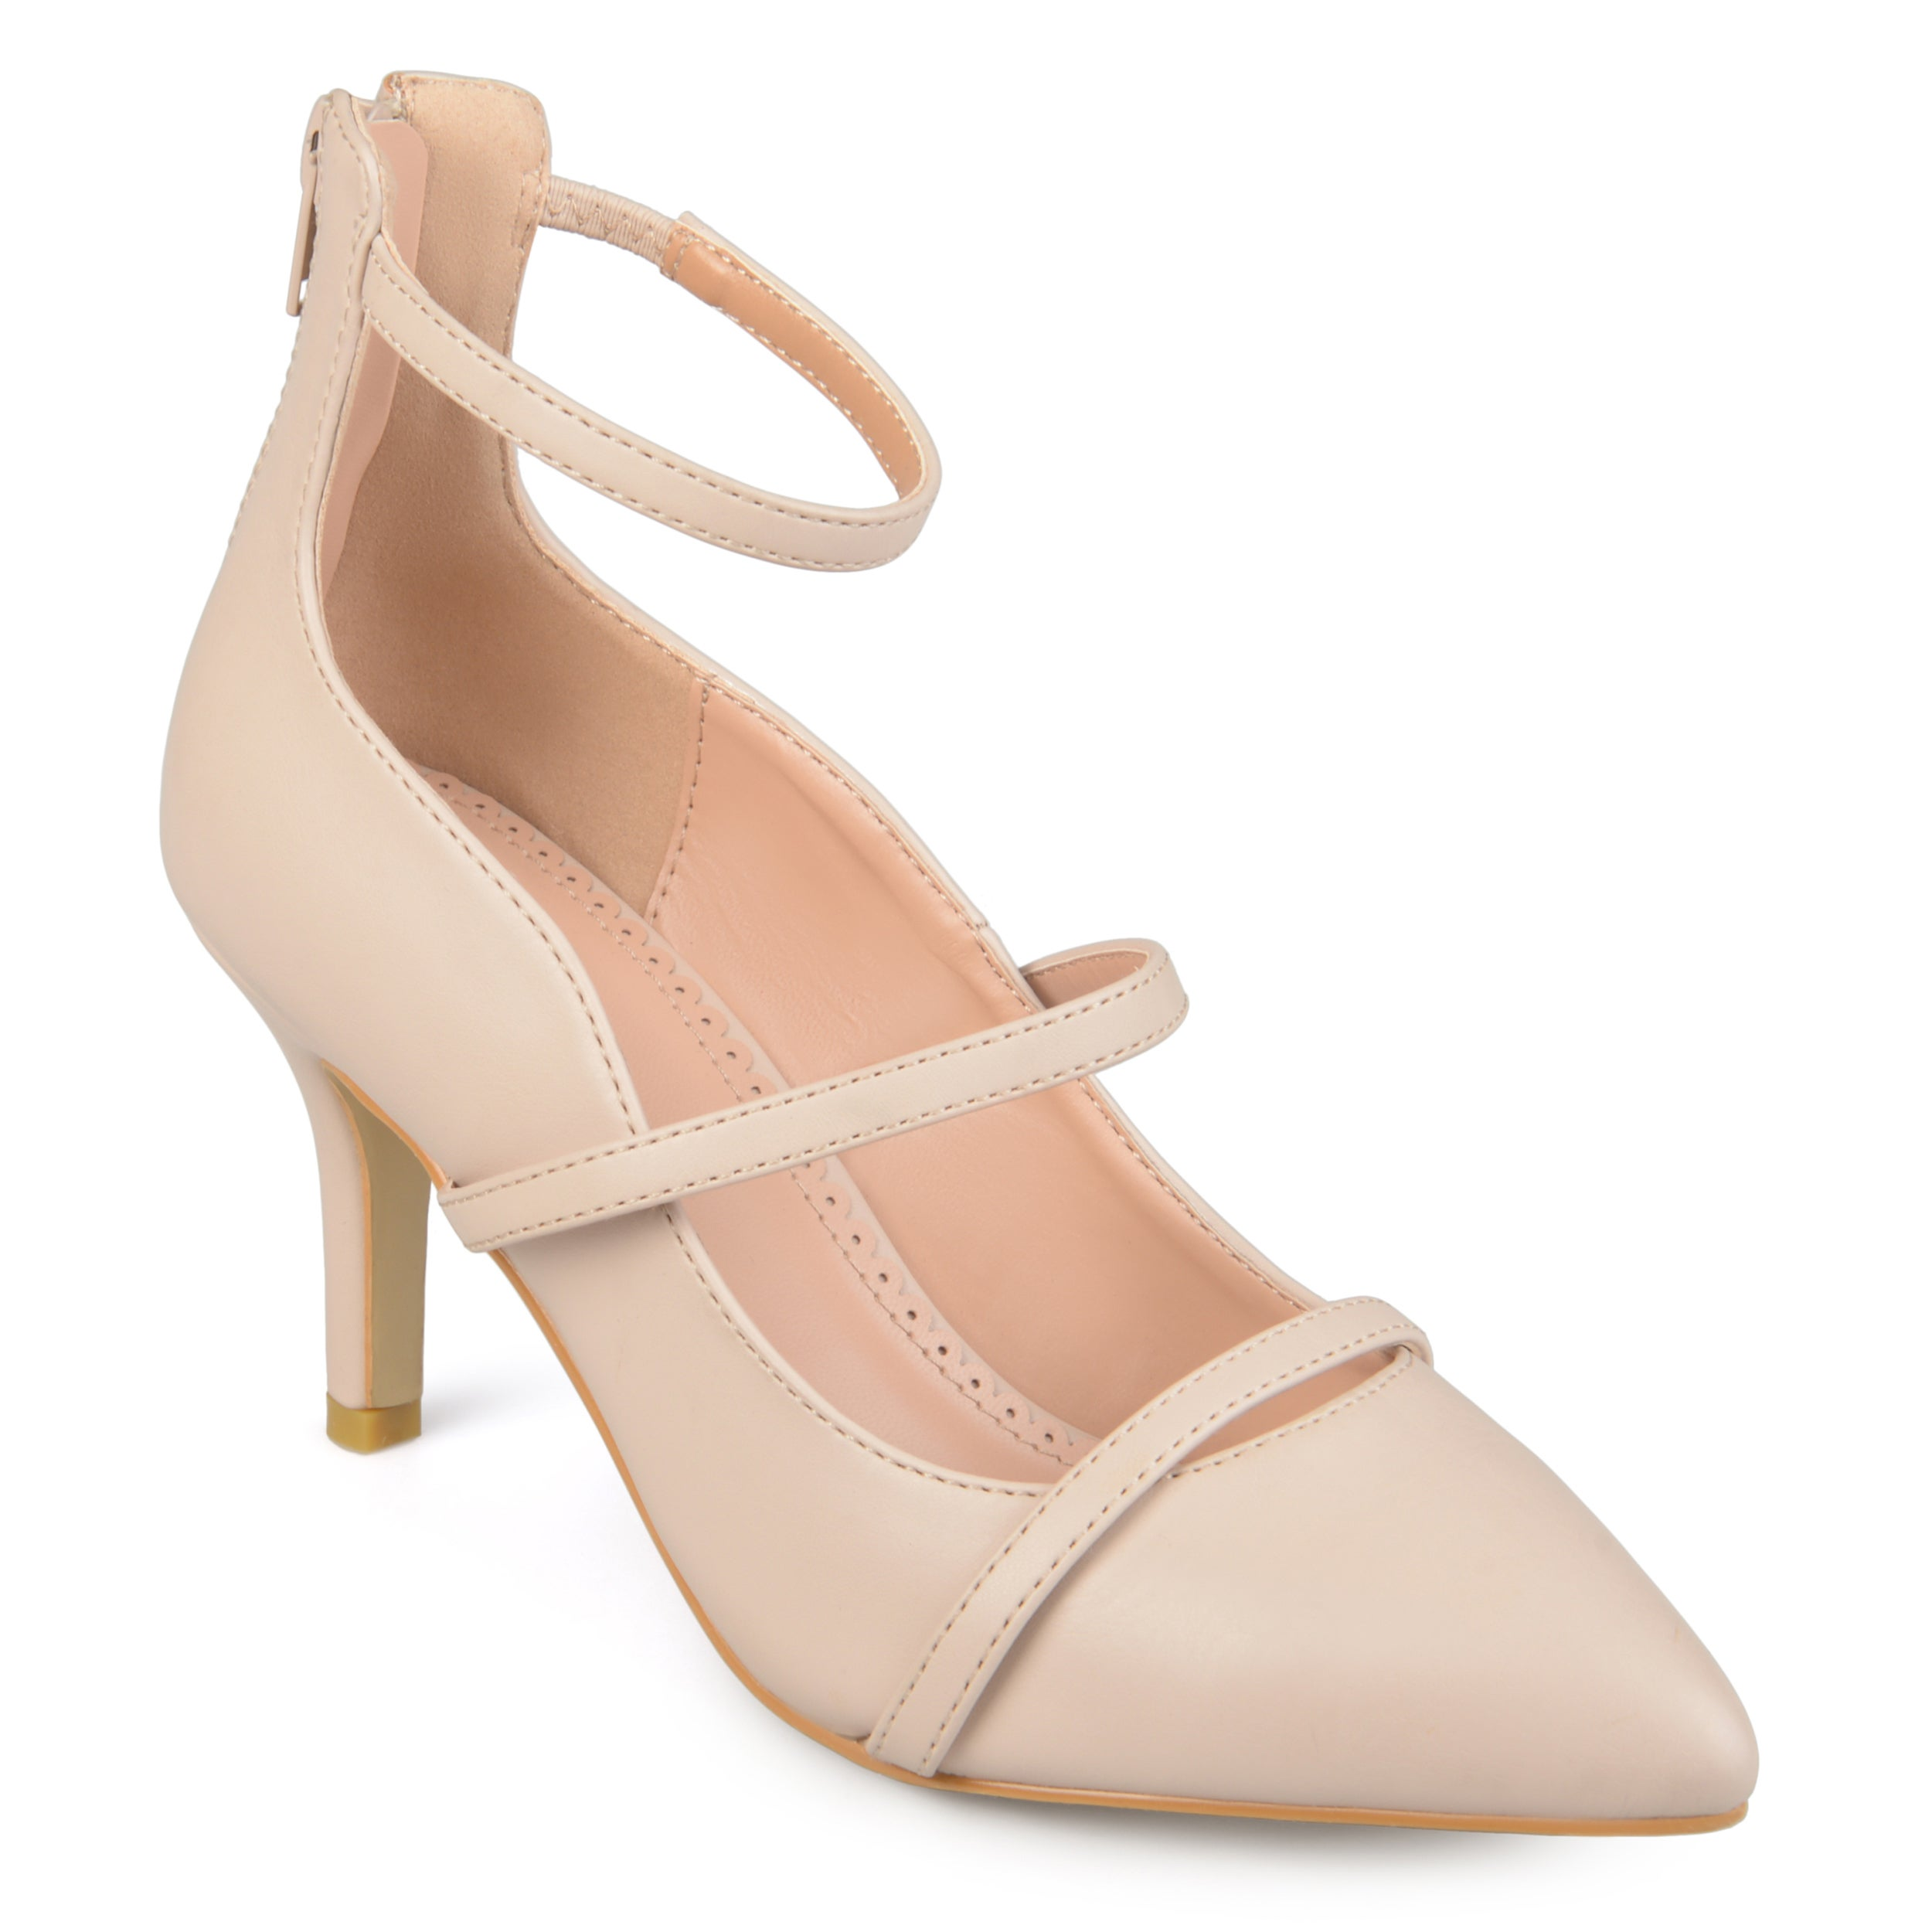 Journee Collection Cece ... Women's High Heels discount shop for buy cheap price discount pre order u1GNlD